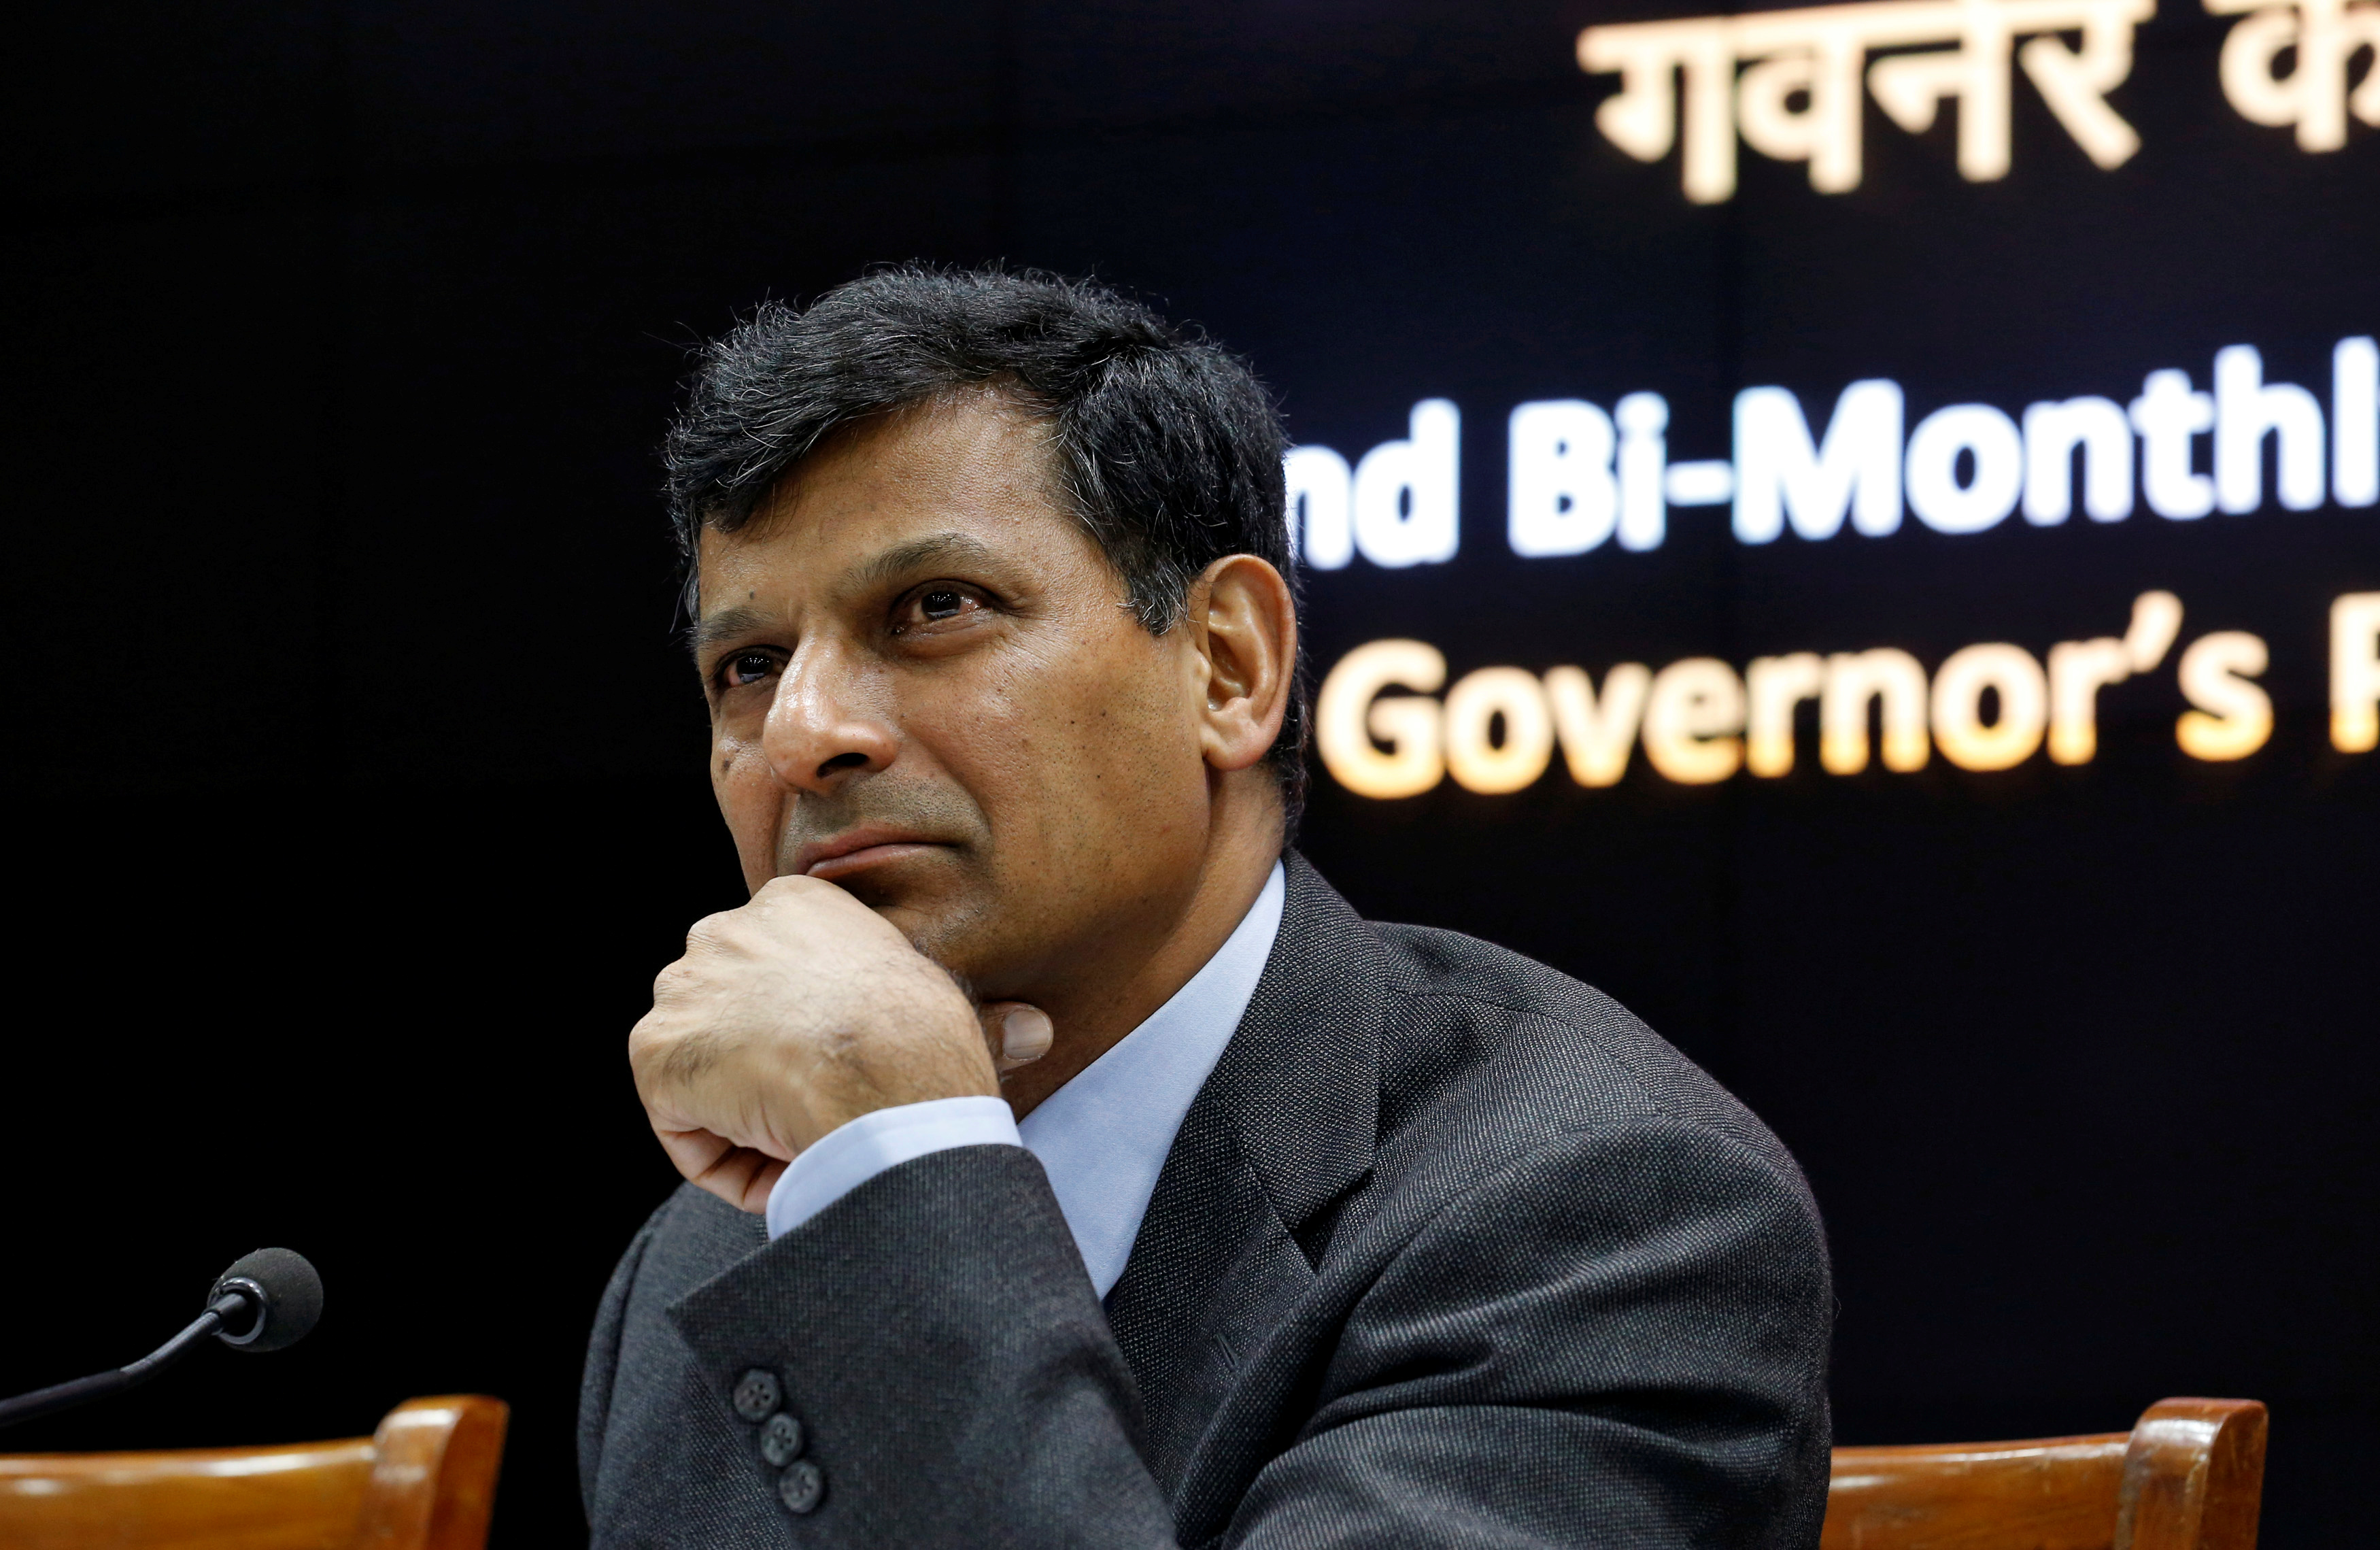 RBI Governor Rajan attends a news conference after their bimonthly monetary policy review in Mumbai